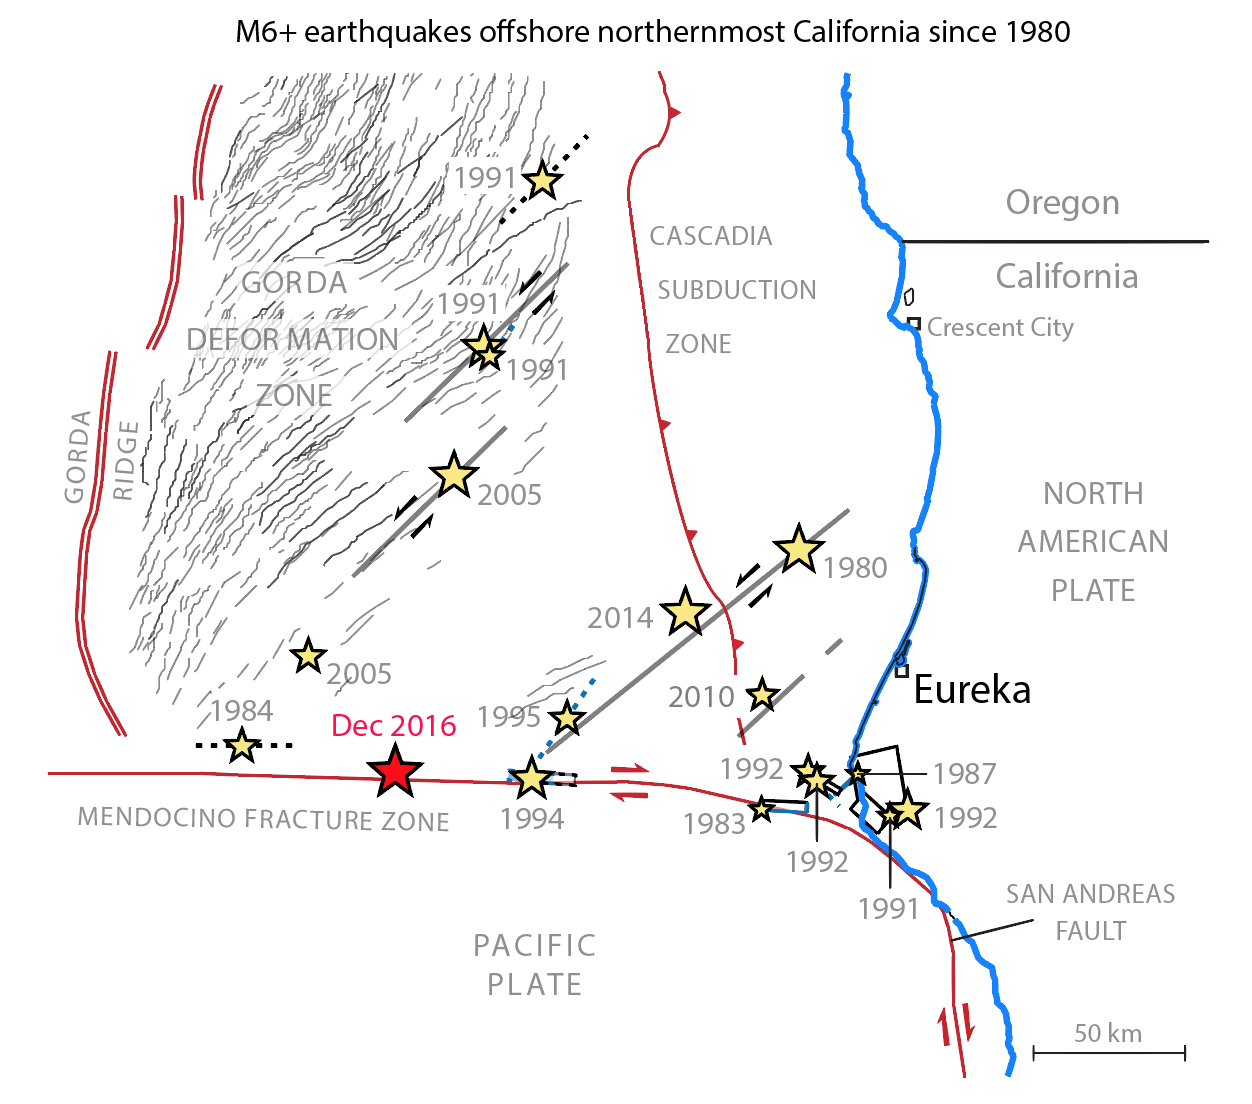 Locations of M>=6 earthquakes in and around the Gorda deformation zone since 1980.